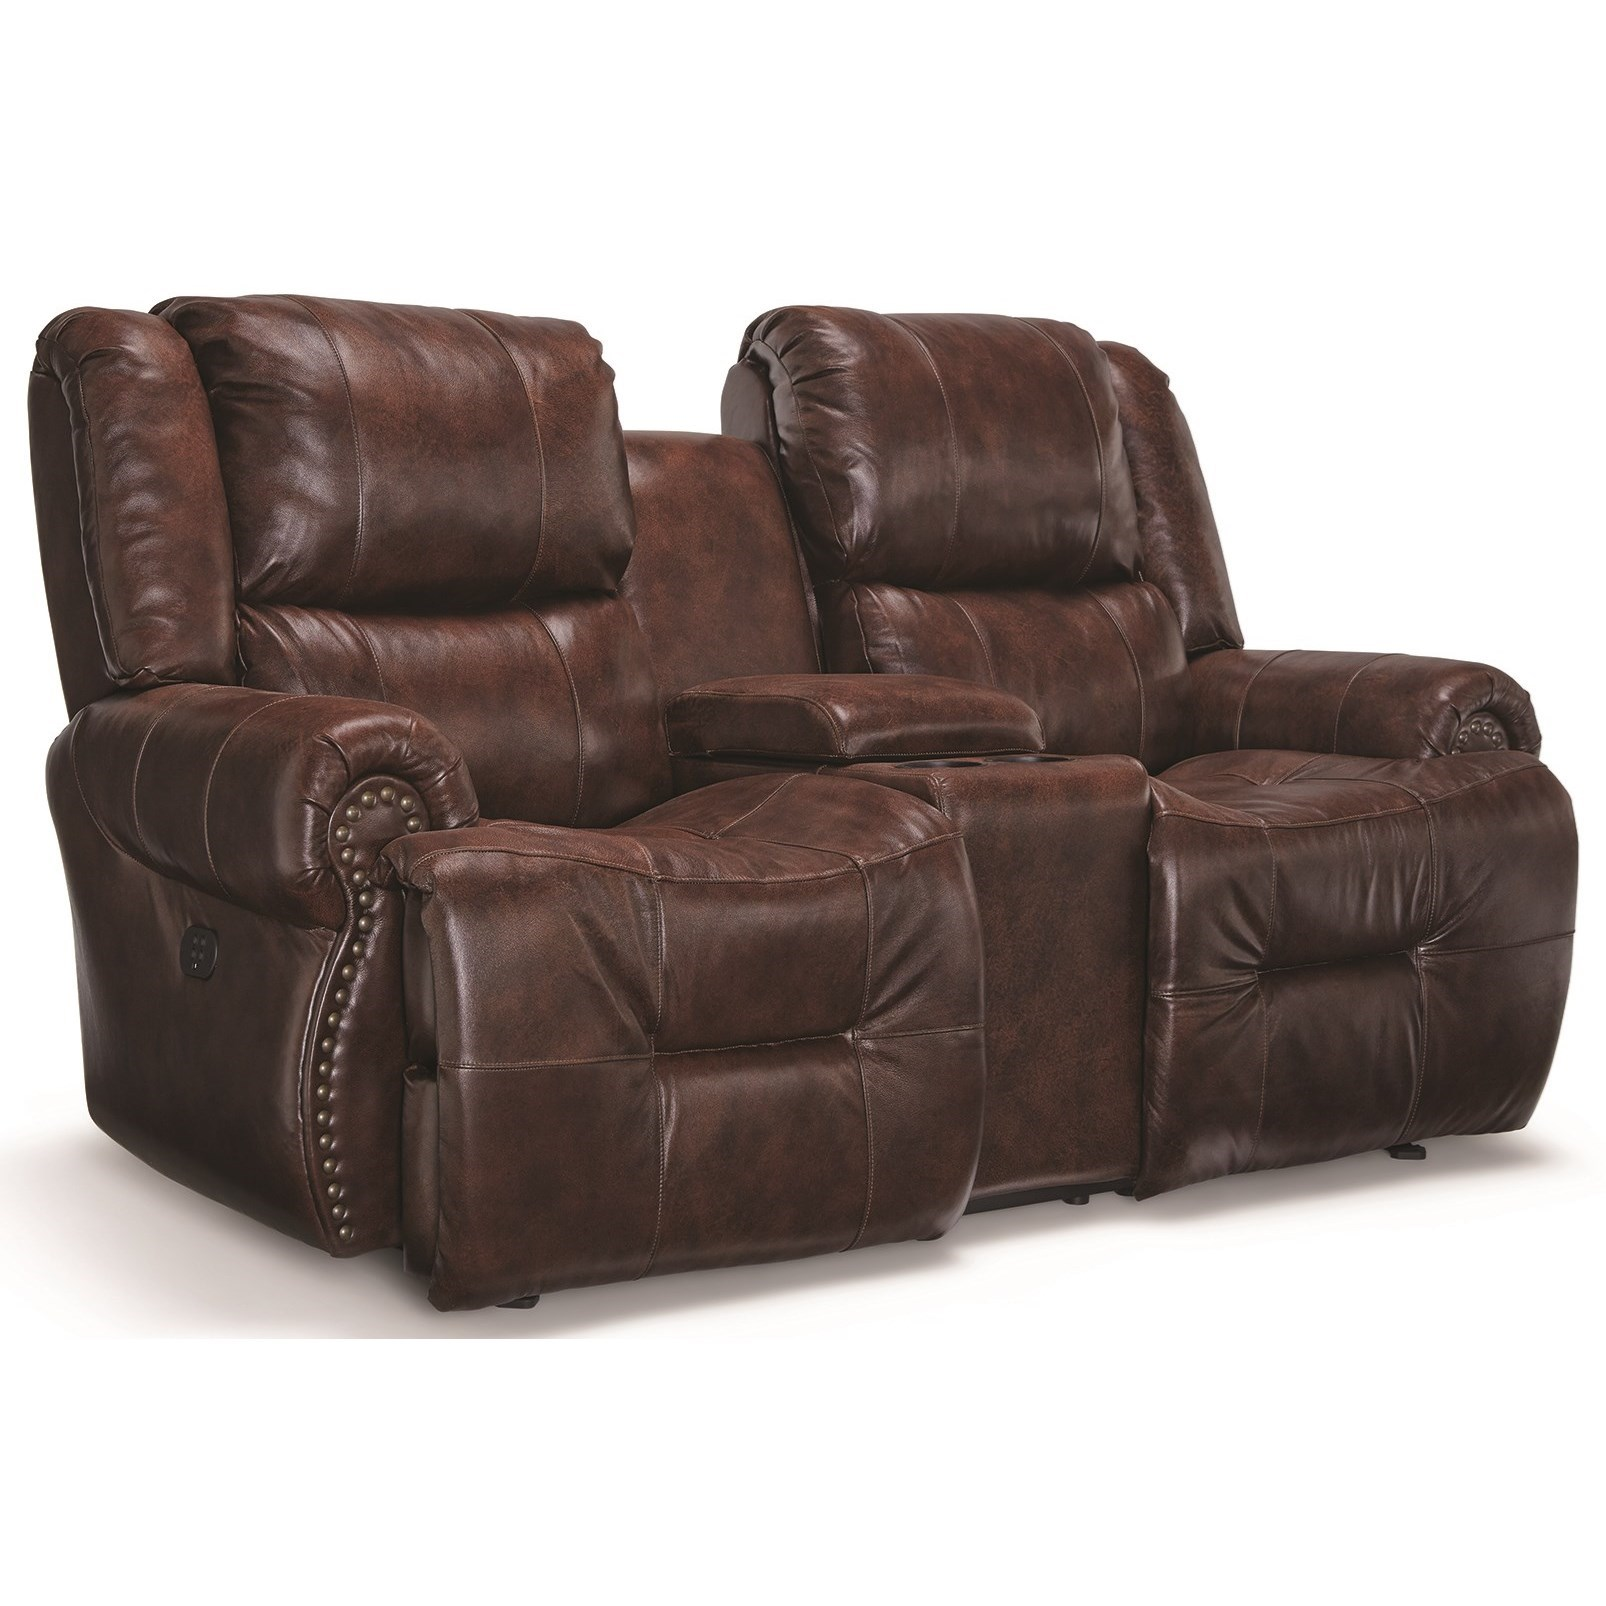 Genet Power Rocking Reclining Console Loveseat by Best Home Furnishings at Best Home Furnishings